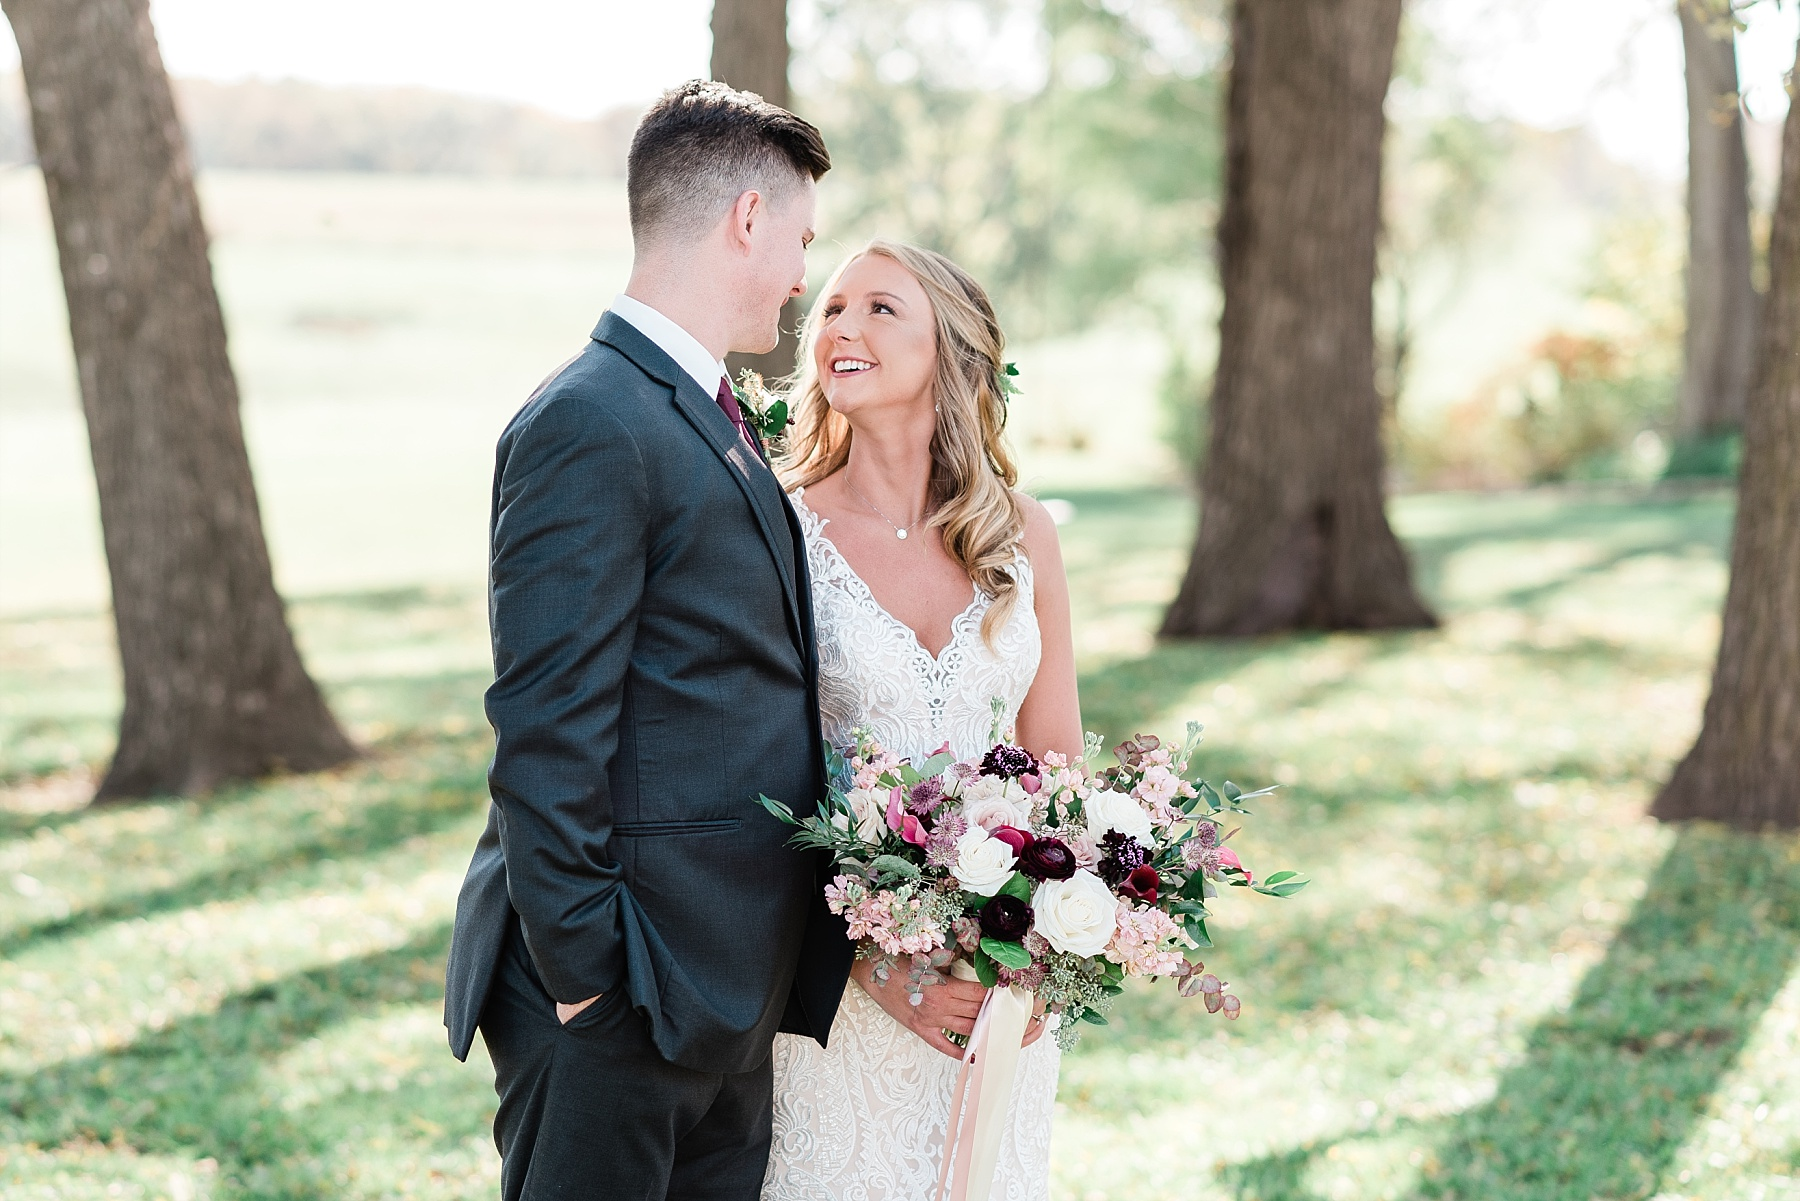 Golden Autumn Outdoor Wedding with Ivory, Bergundy, and Blush Color Palette at Blue Bell Farms  by Kelsi Kliethermes Photography_0011.jpg